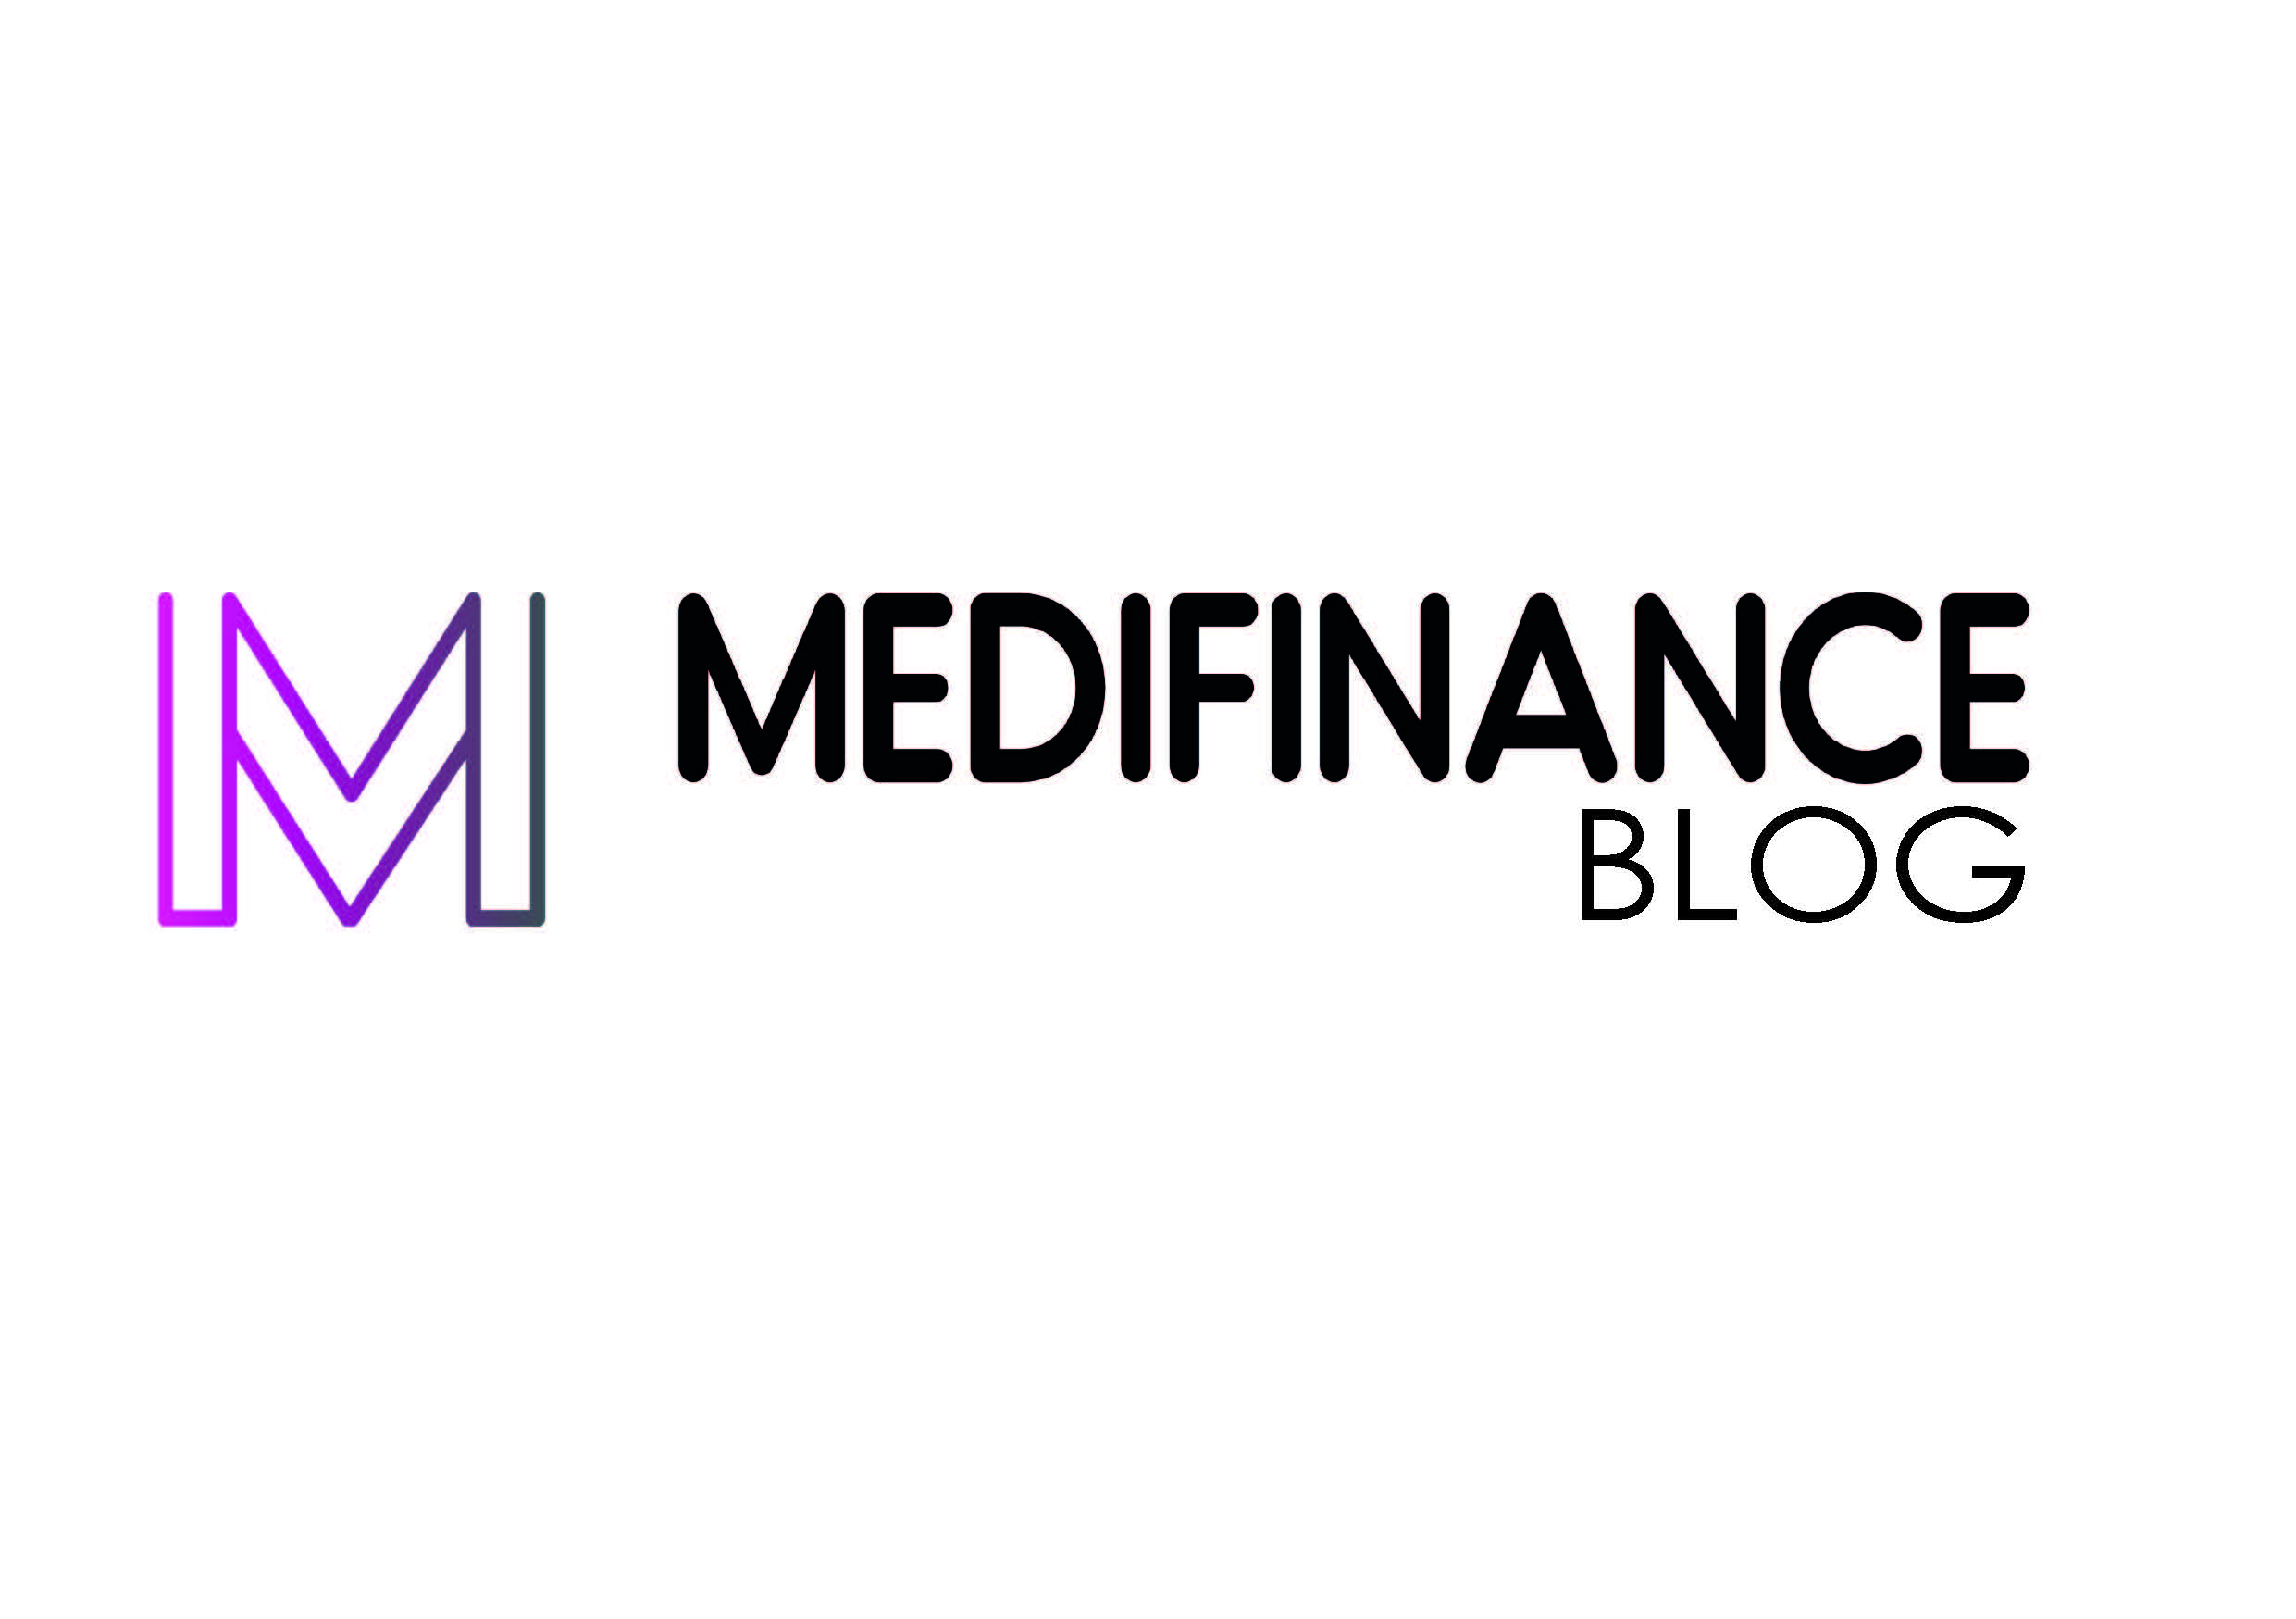 Looking to purchase your own Pharmacy? #medifinanceblog #pharmacy